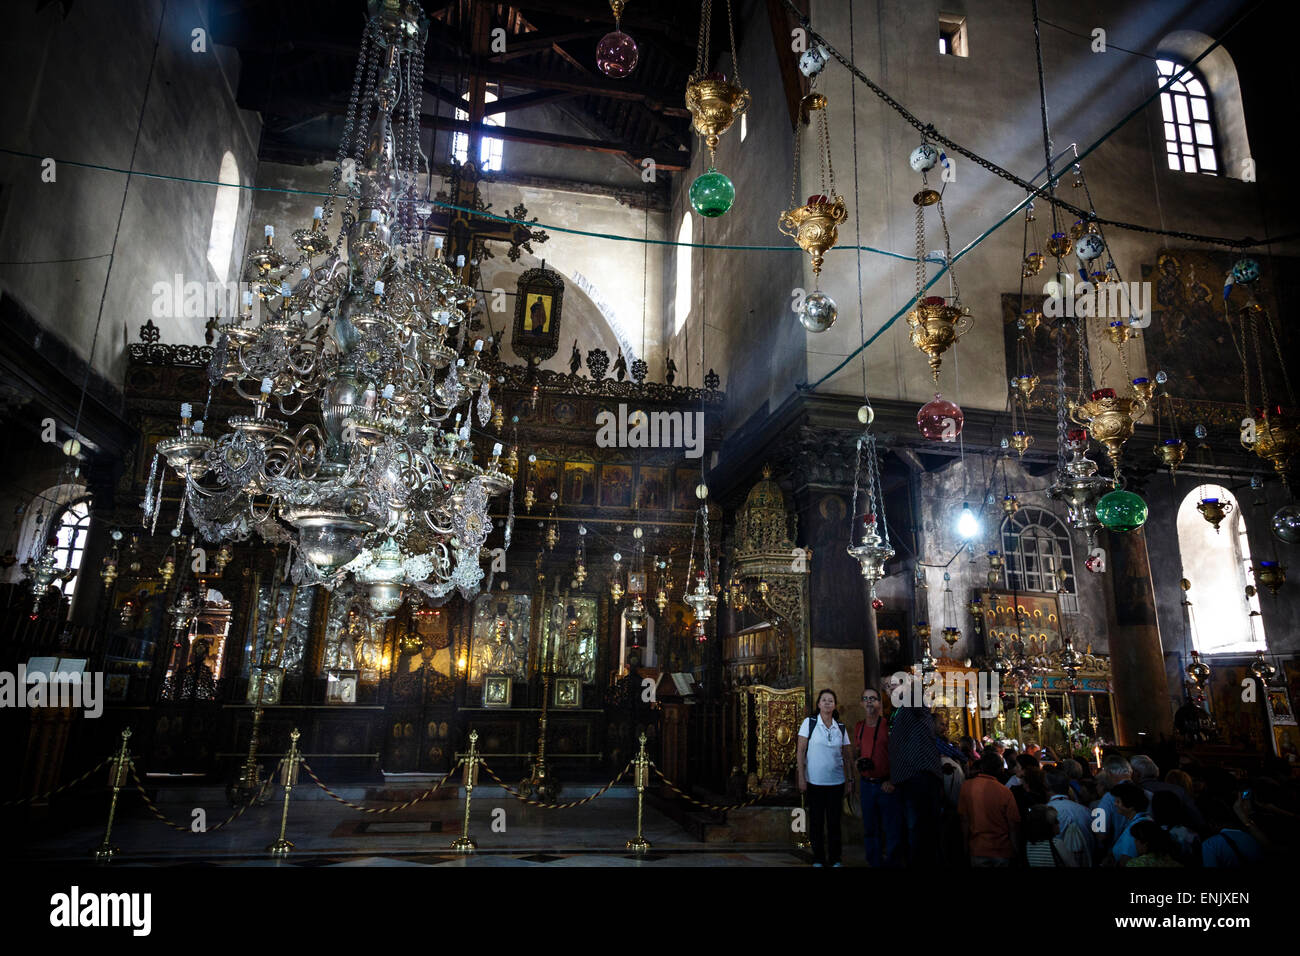 Church of the Nativity, Bethlehem, West Bank, Palestine territories, Israel, Middle East - Stock Image